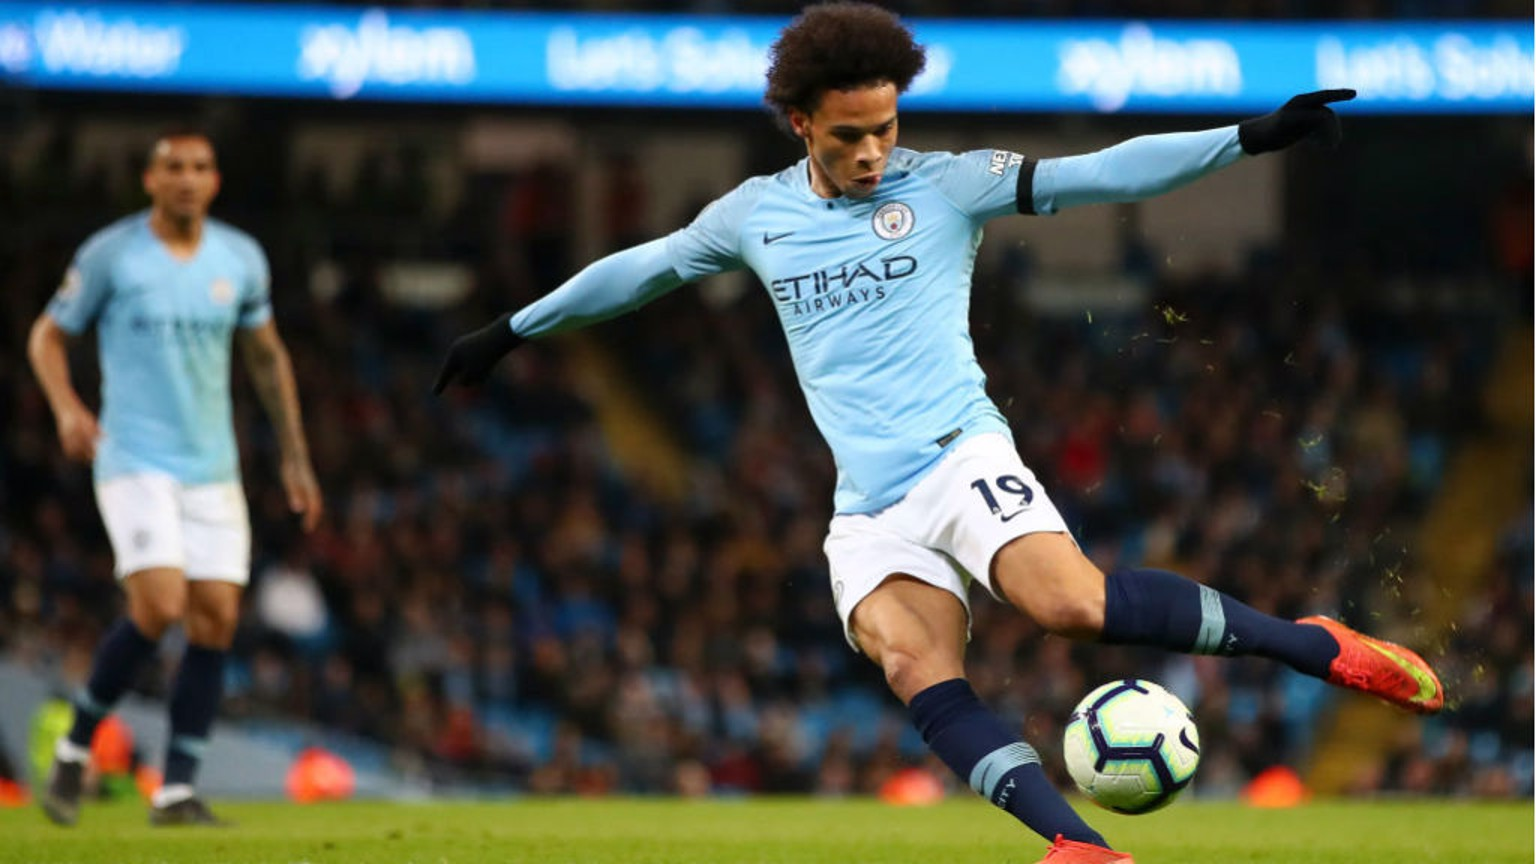 DOUBLE DELIGHT: Leroy Sane cracks home our second goal on the stroke of half-time